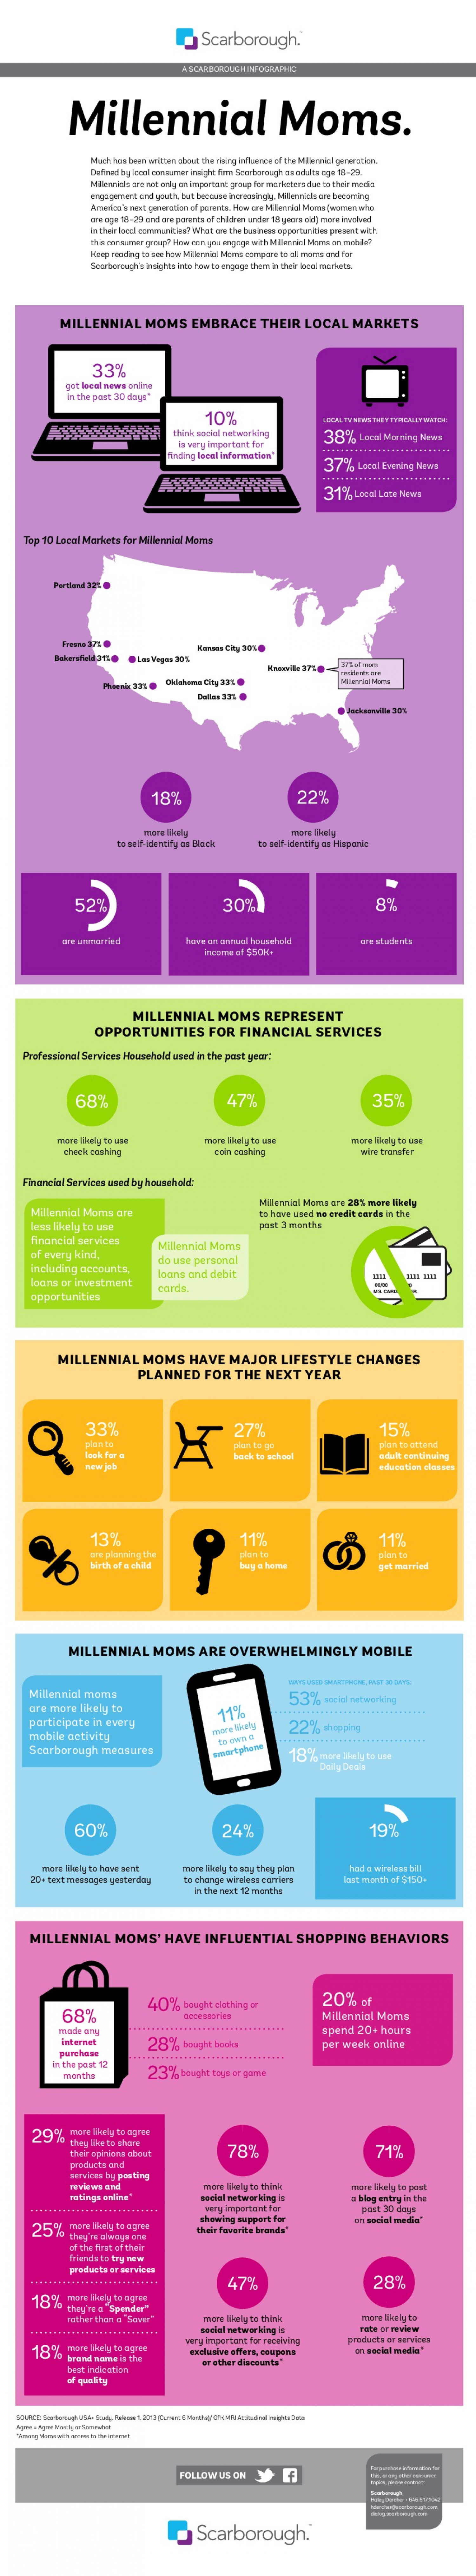 Millennial Moms Infographic